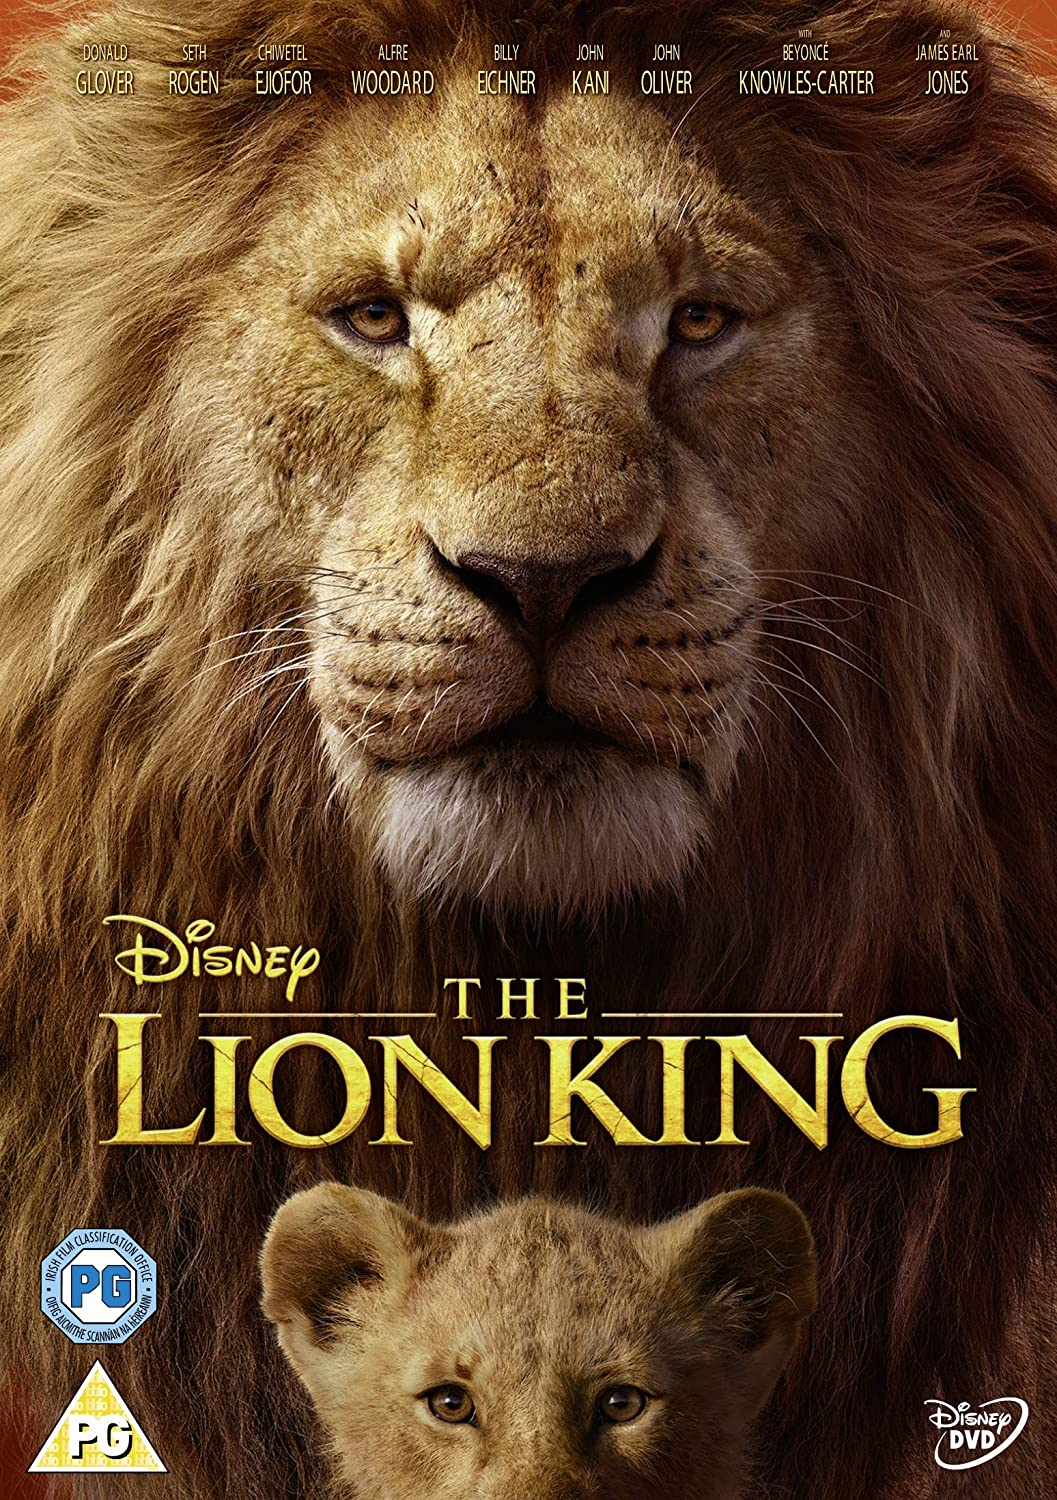 Disney S The Lion King Dvd 2019 Amazon Co Uk Donald Glover